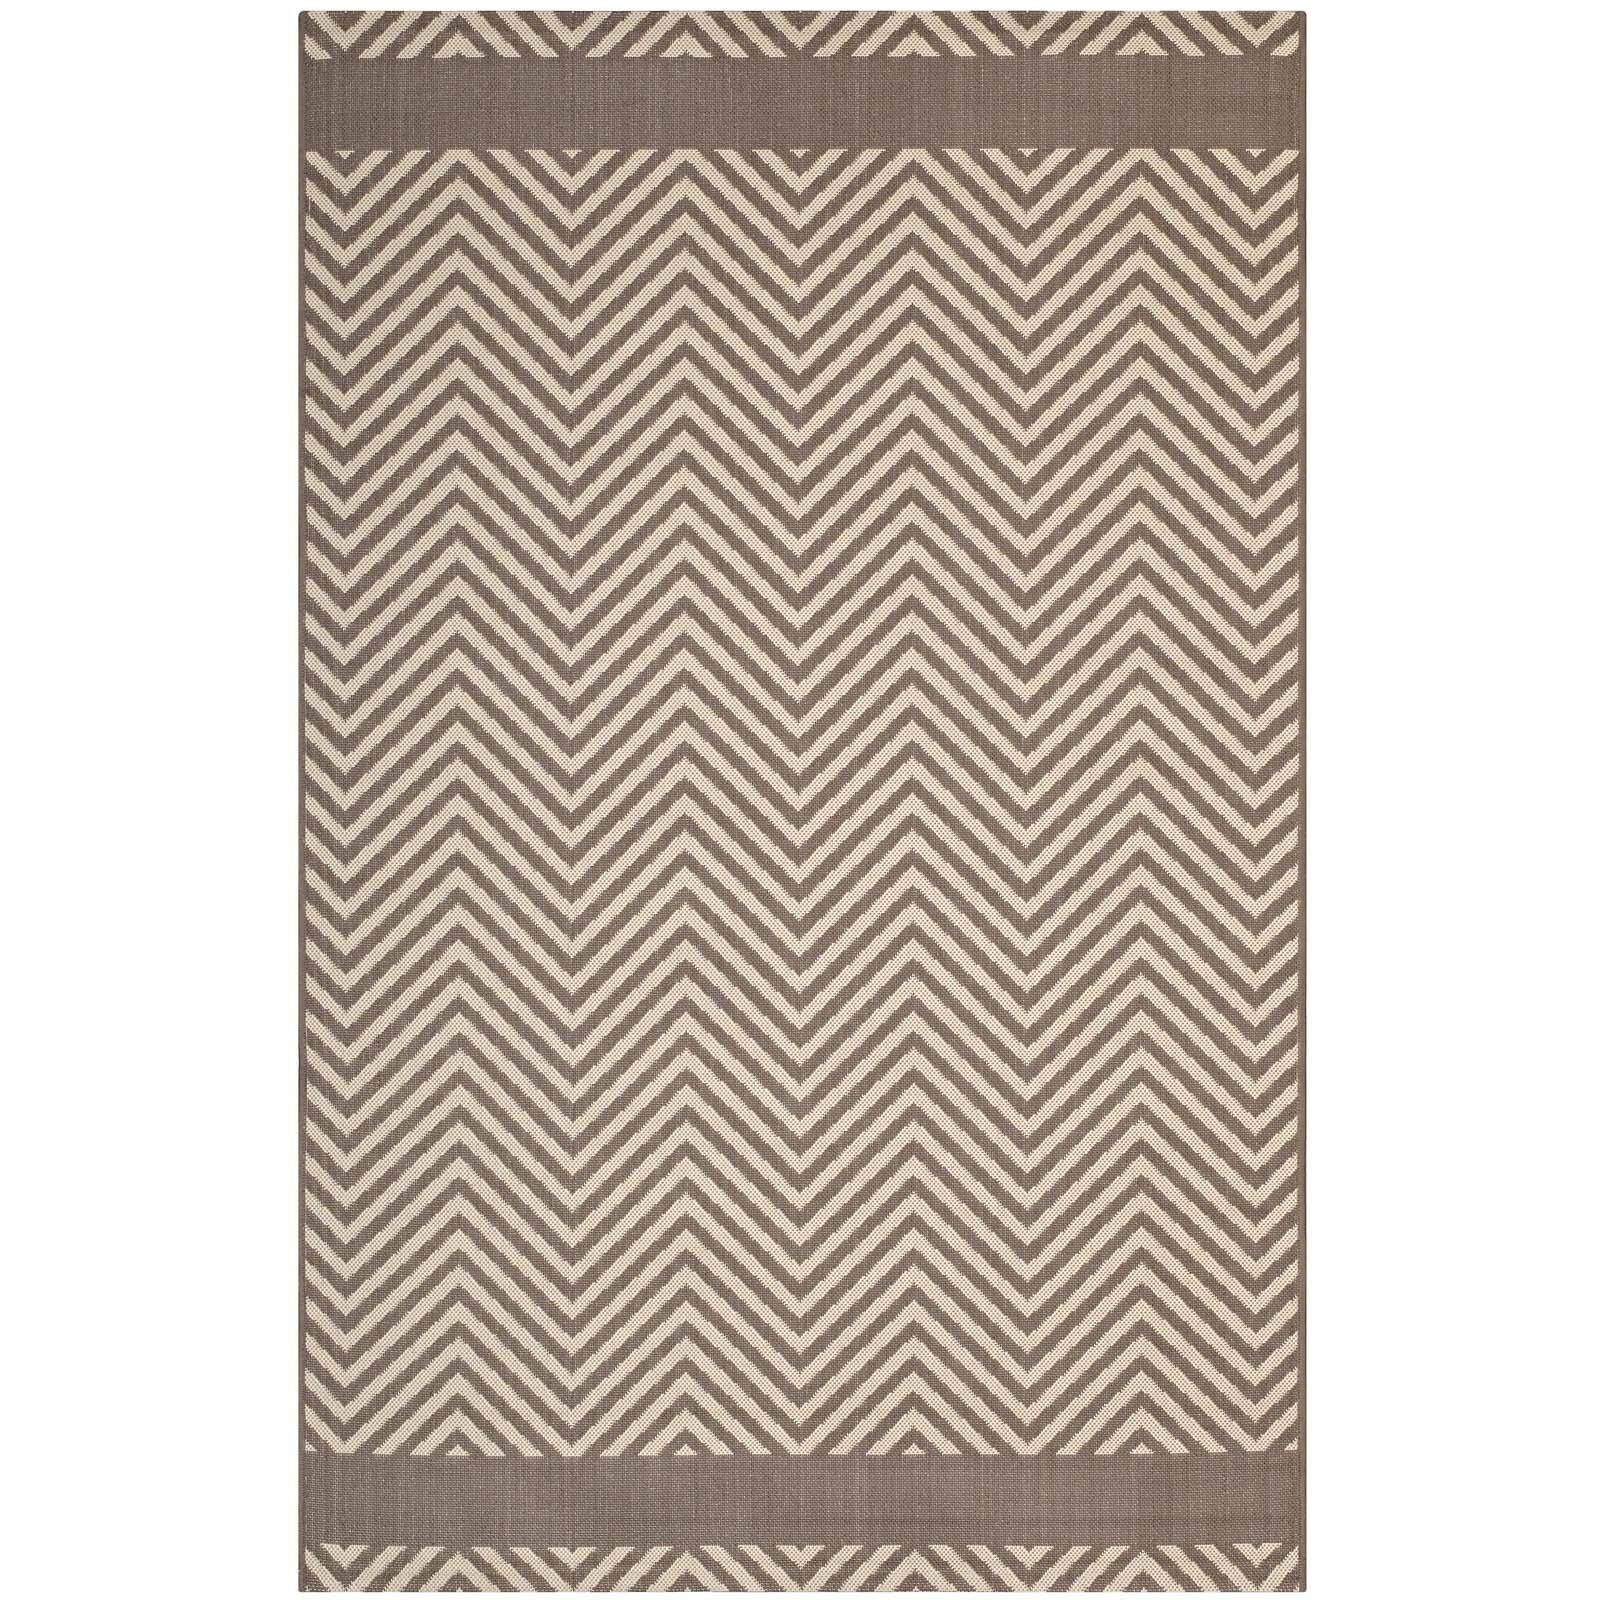 Modway R-1141A-810 Optica Chevron with End Borders 8' x 10' Indoor and Outdoor, 8x10, Light and Dark Beige